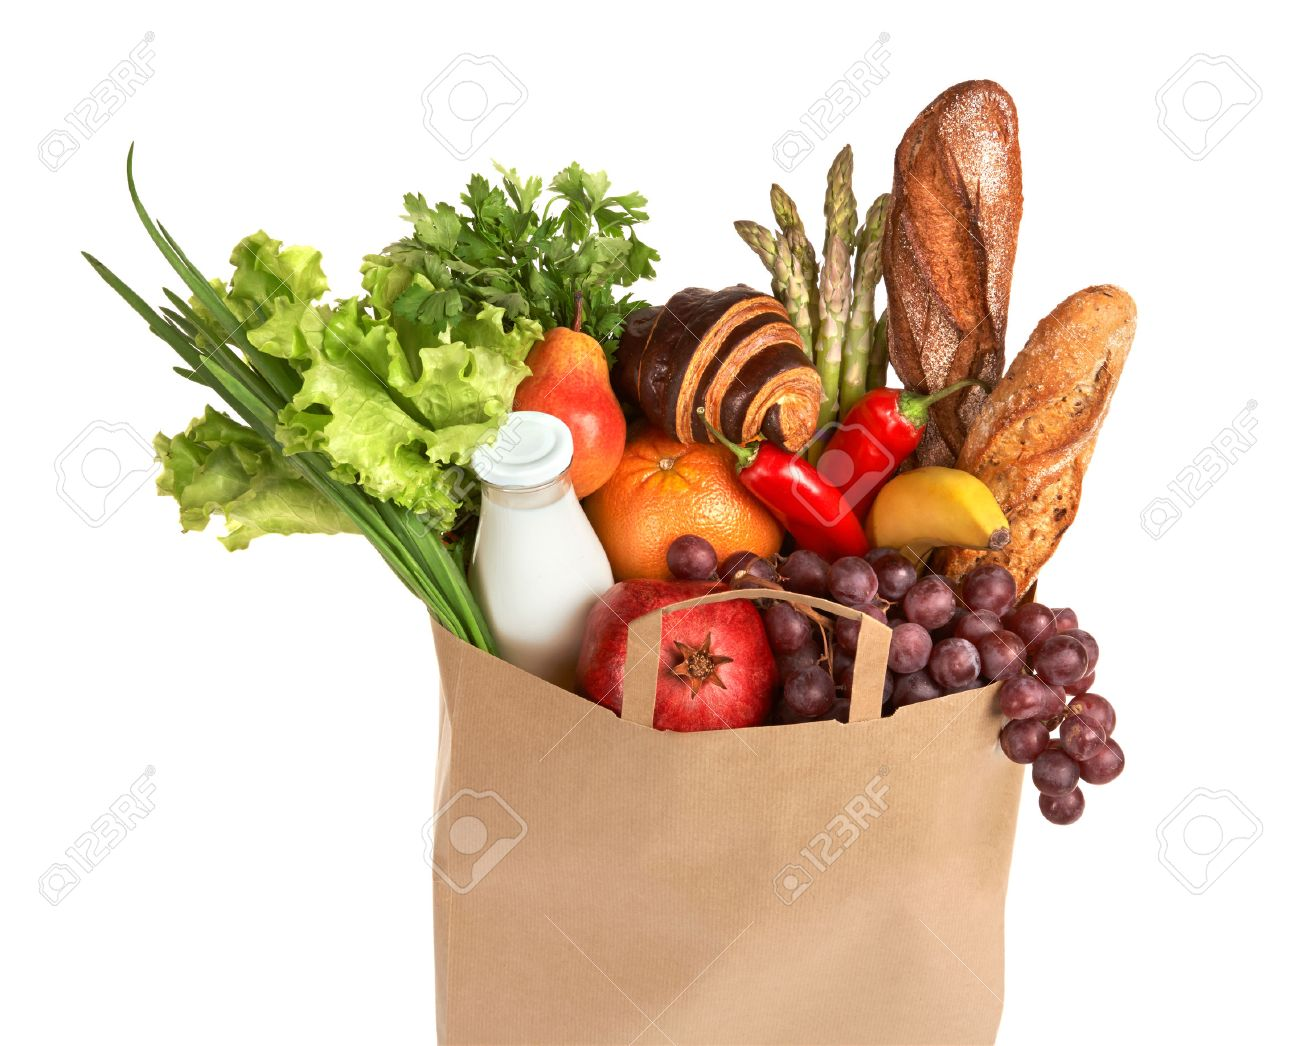 a grocery bag full of healthy fruits and vegetables studio stock